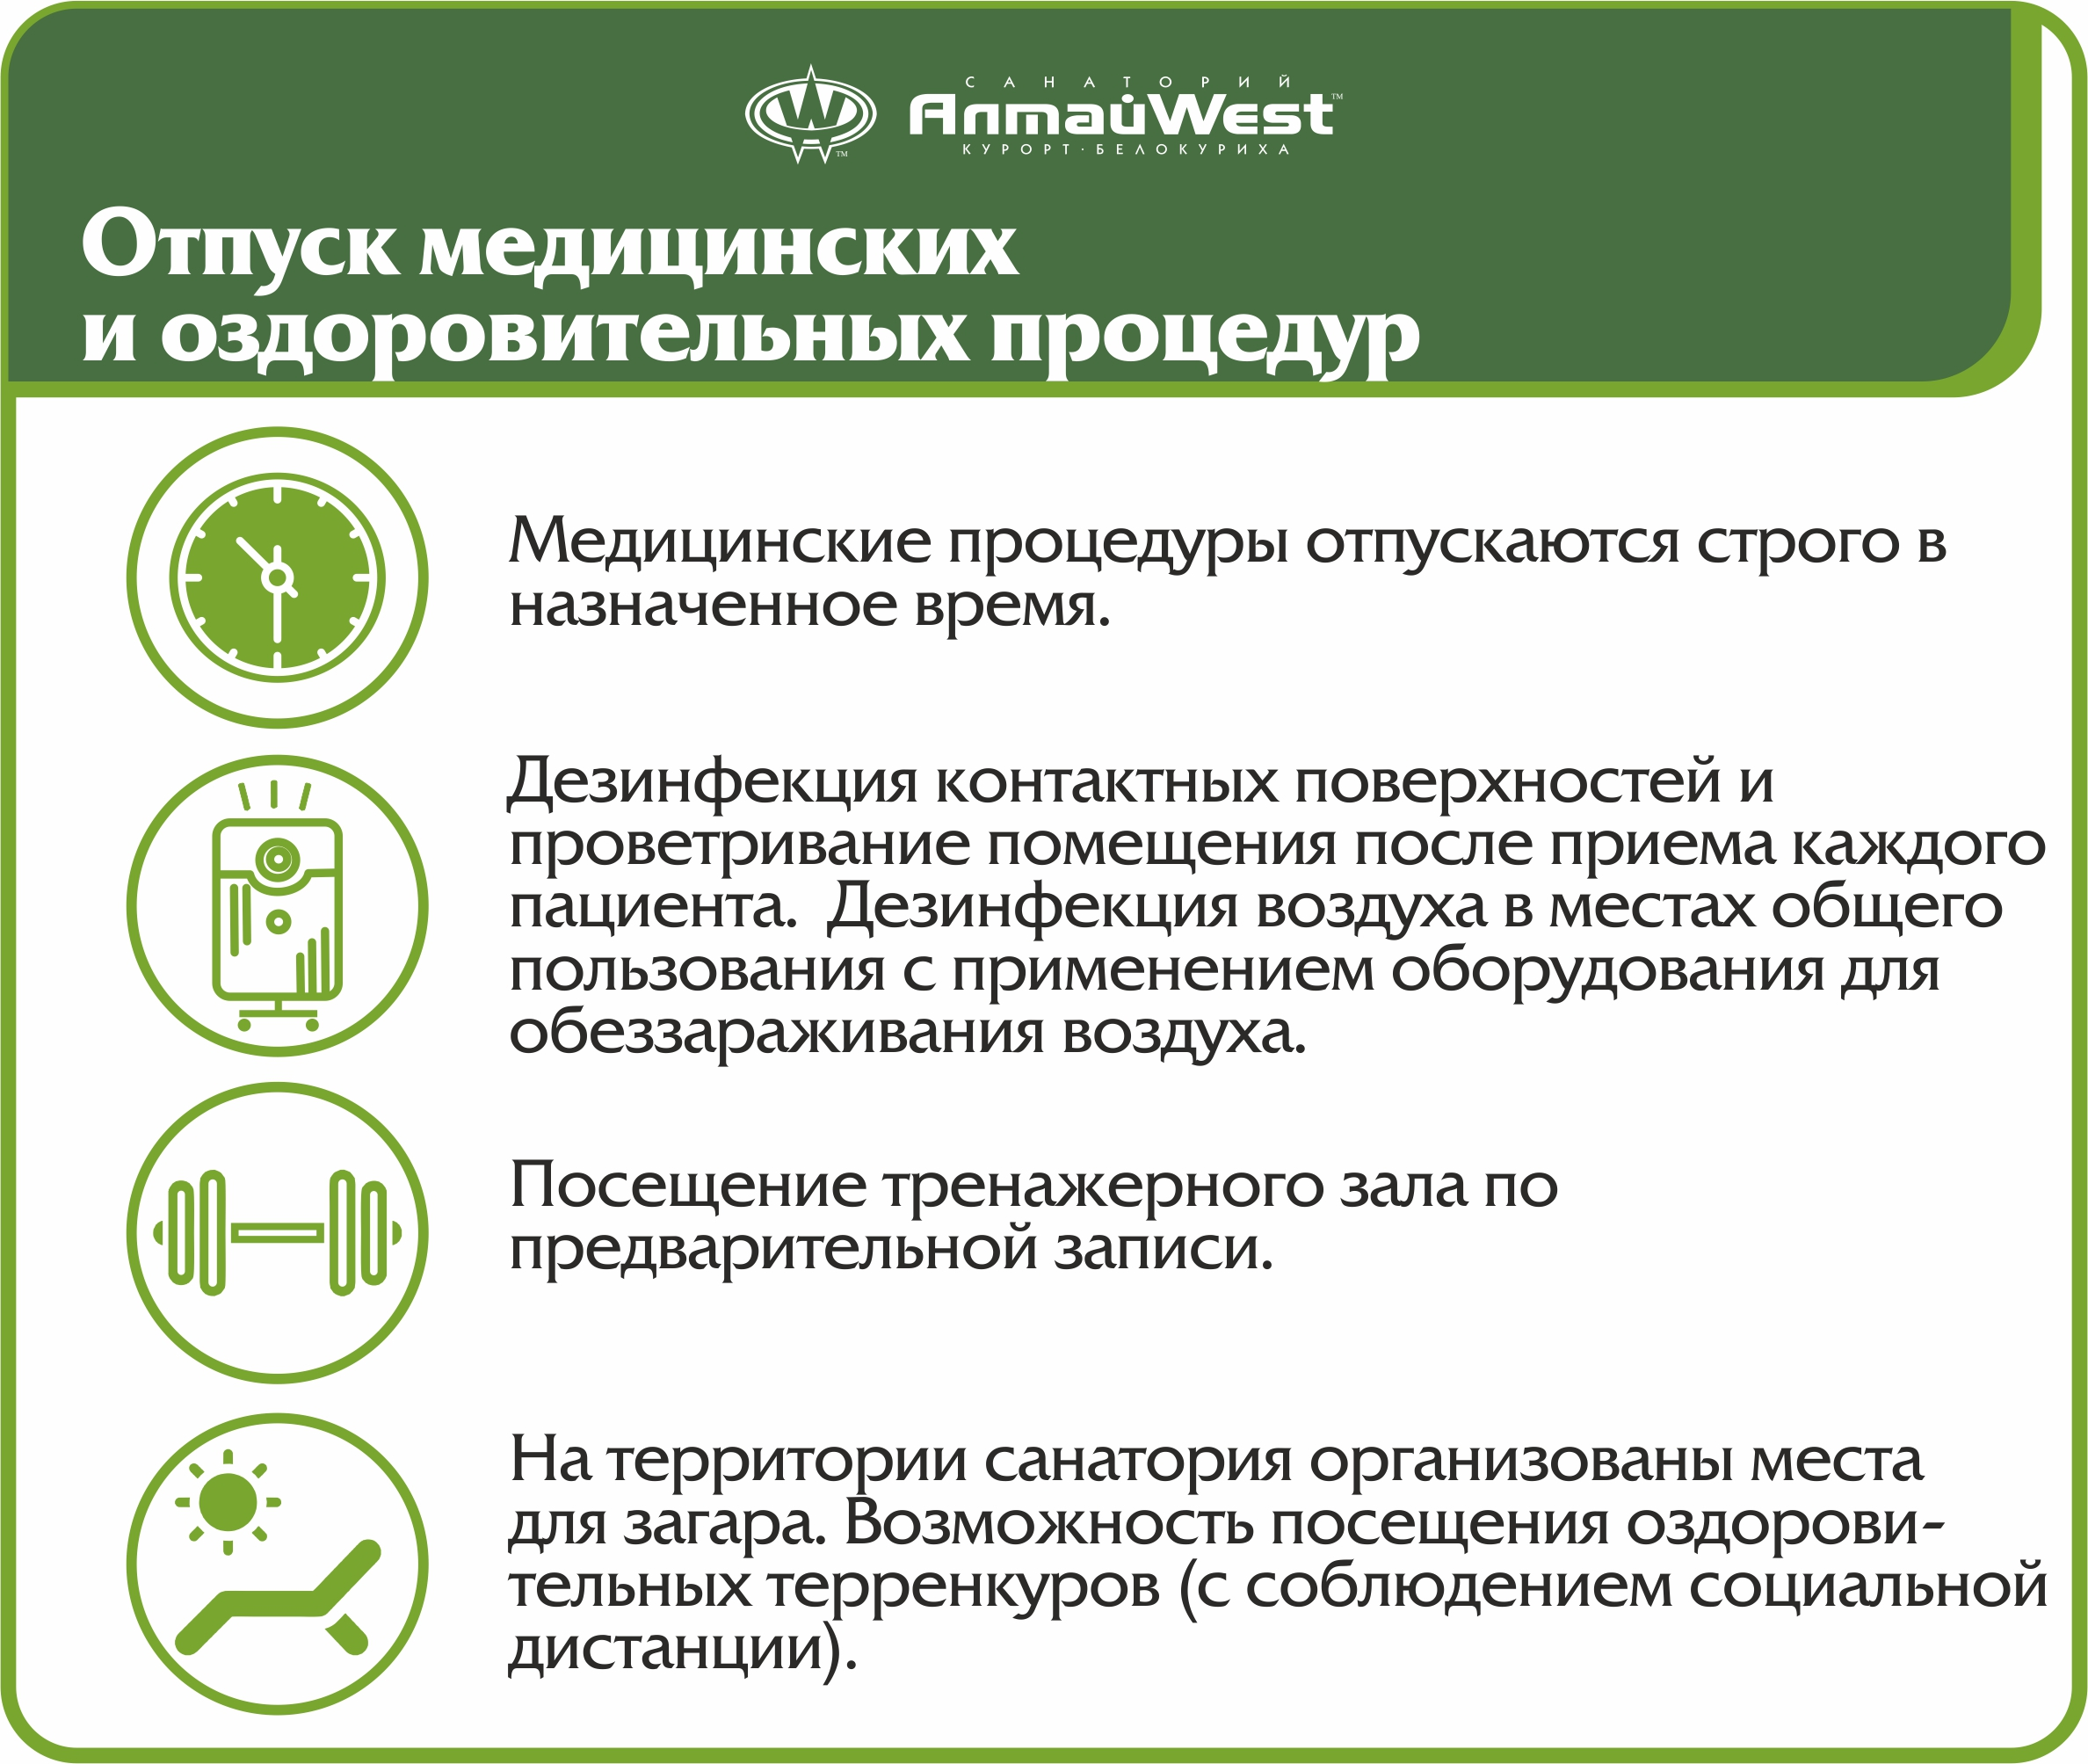 //altai-west.ru/app/uploads/2020/06/med-procedury.jpg